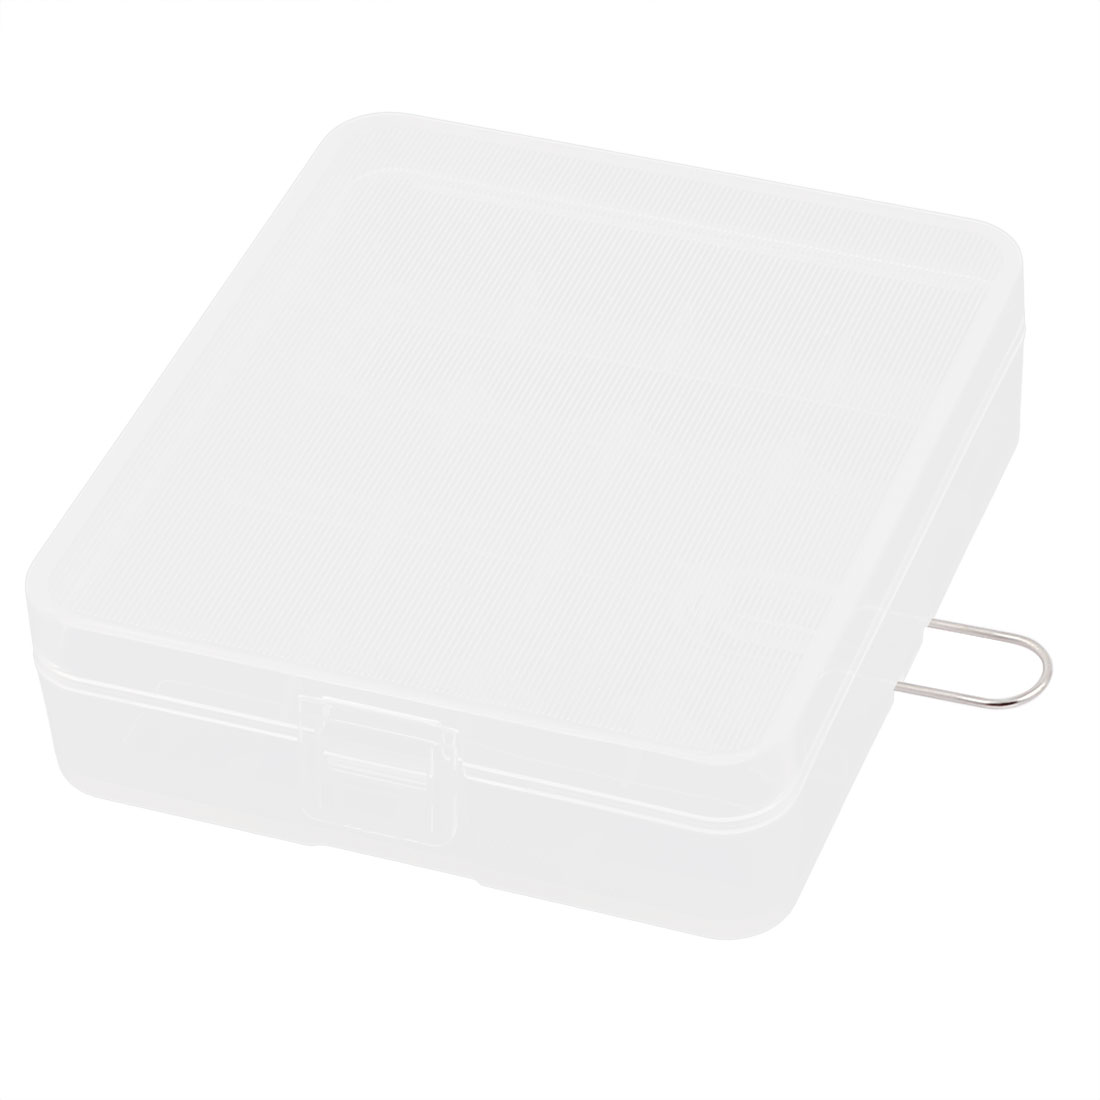 Clear Plastic Rectangle Storage Box Case Container Holder for 4 x 18650 Battery